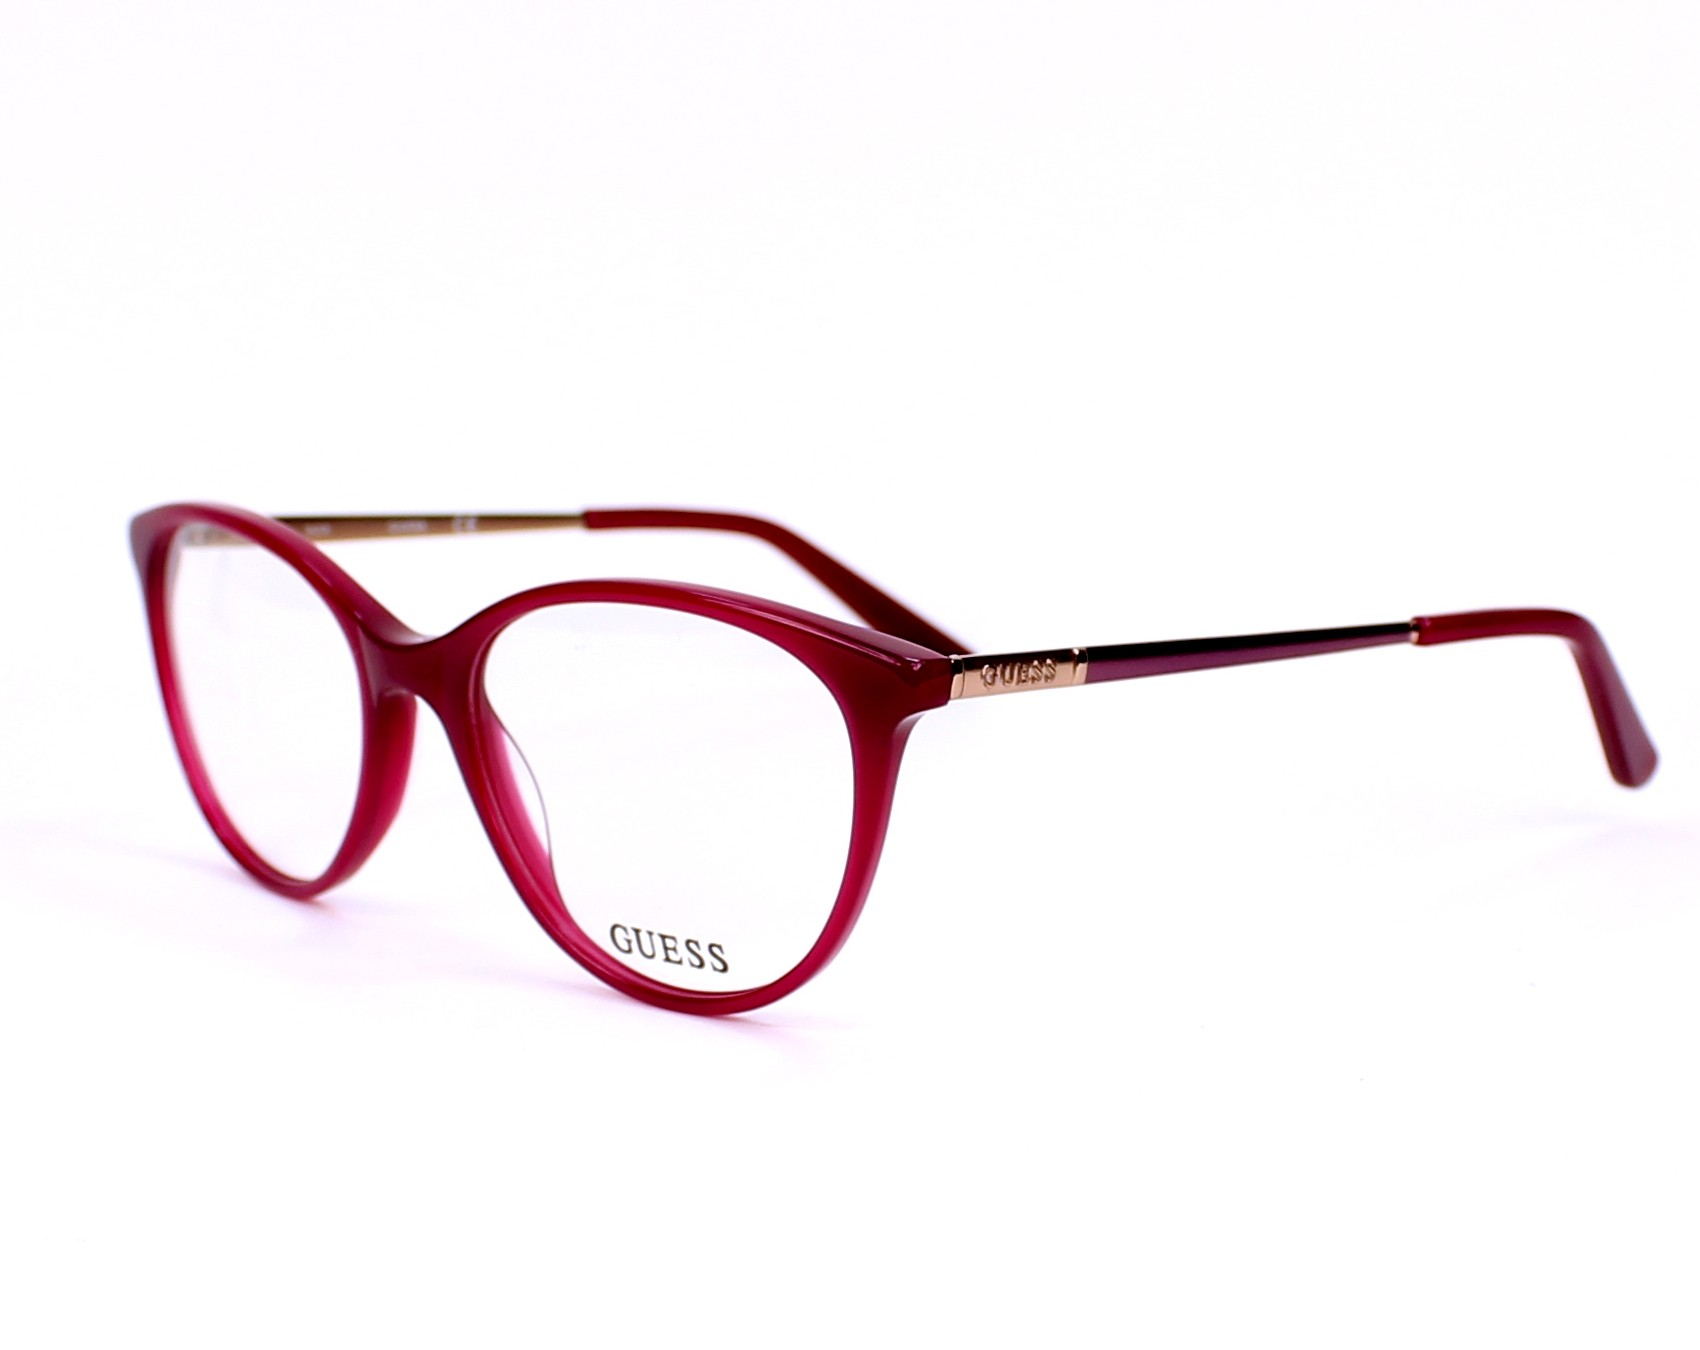 Guess Eyeglasses GU-2565 075 Fuchsia - Visionet UK